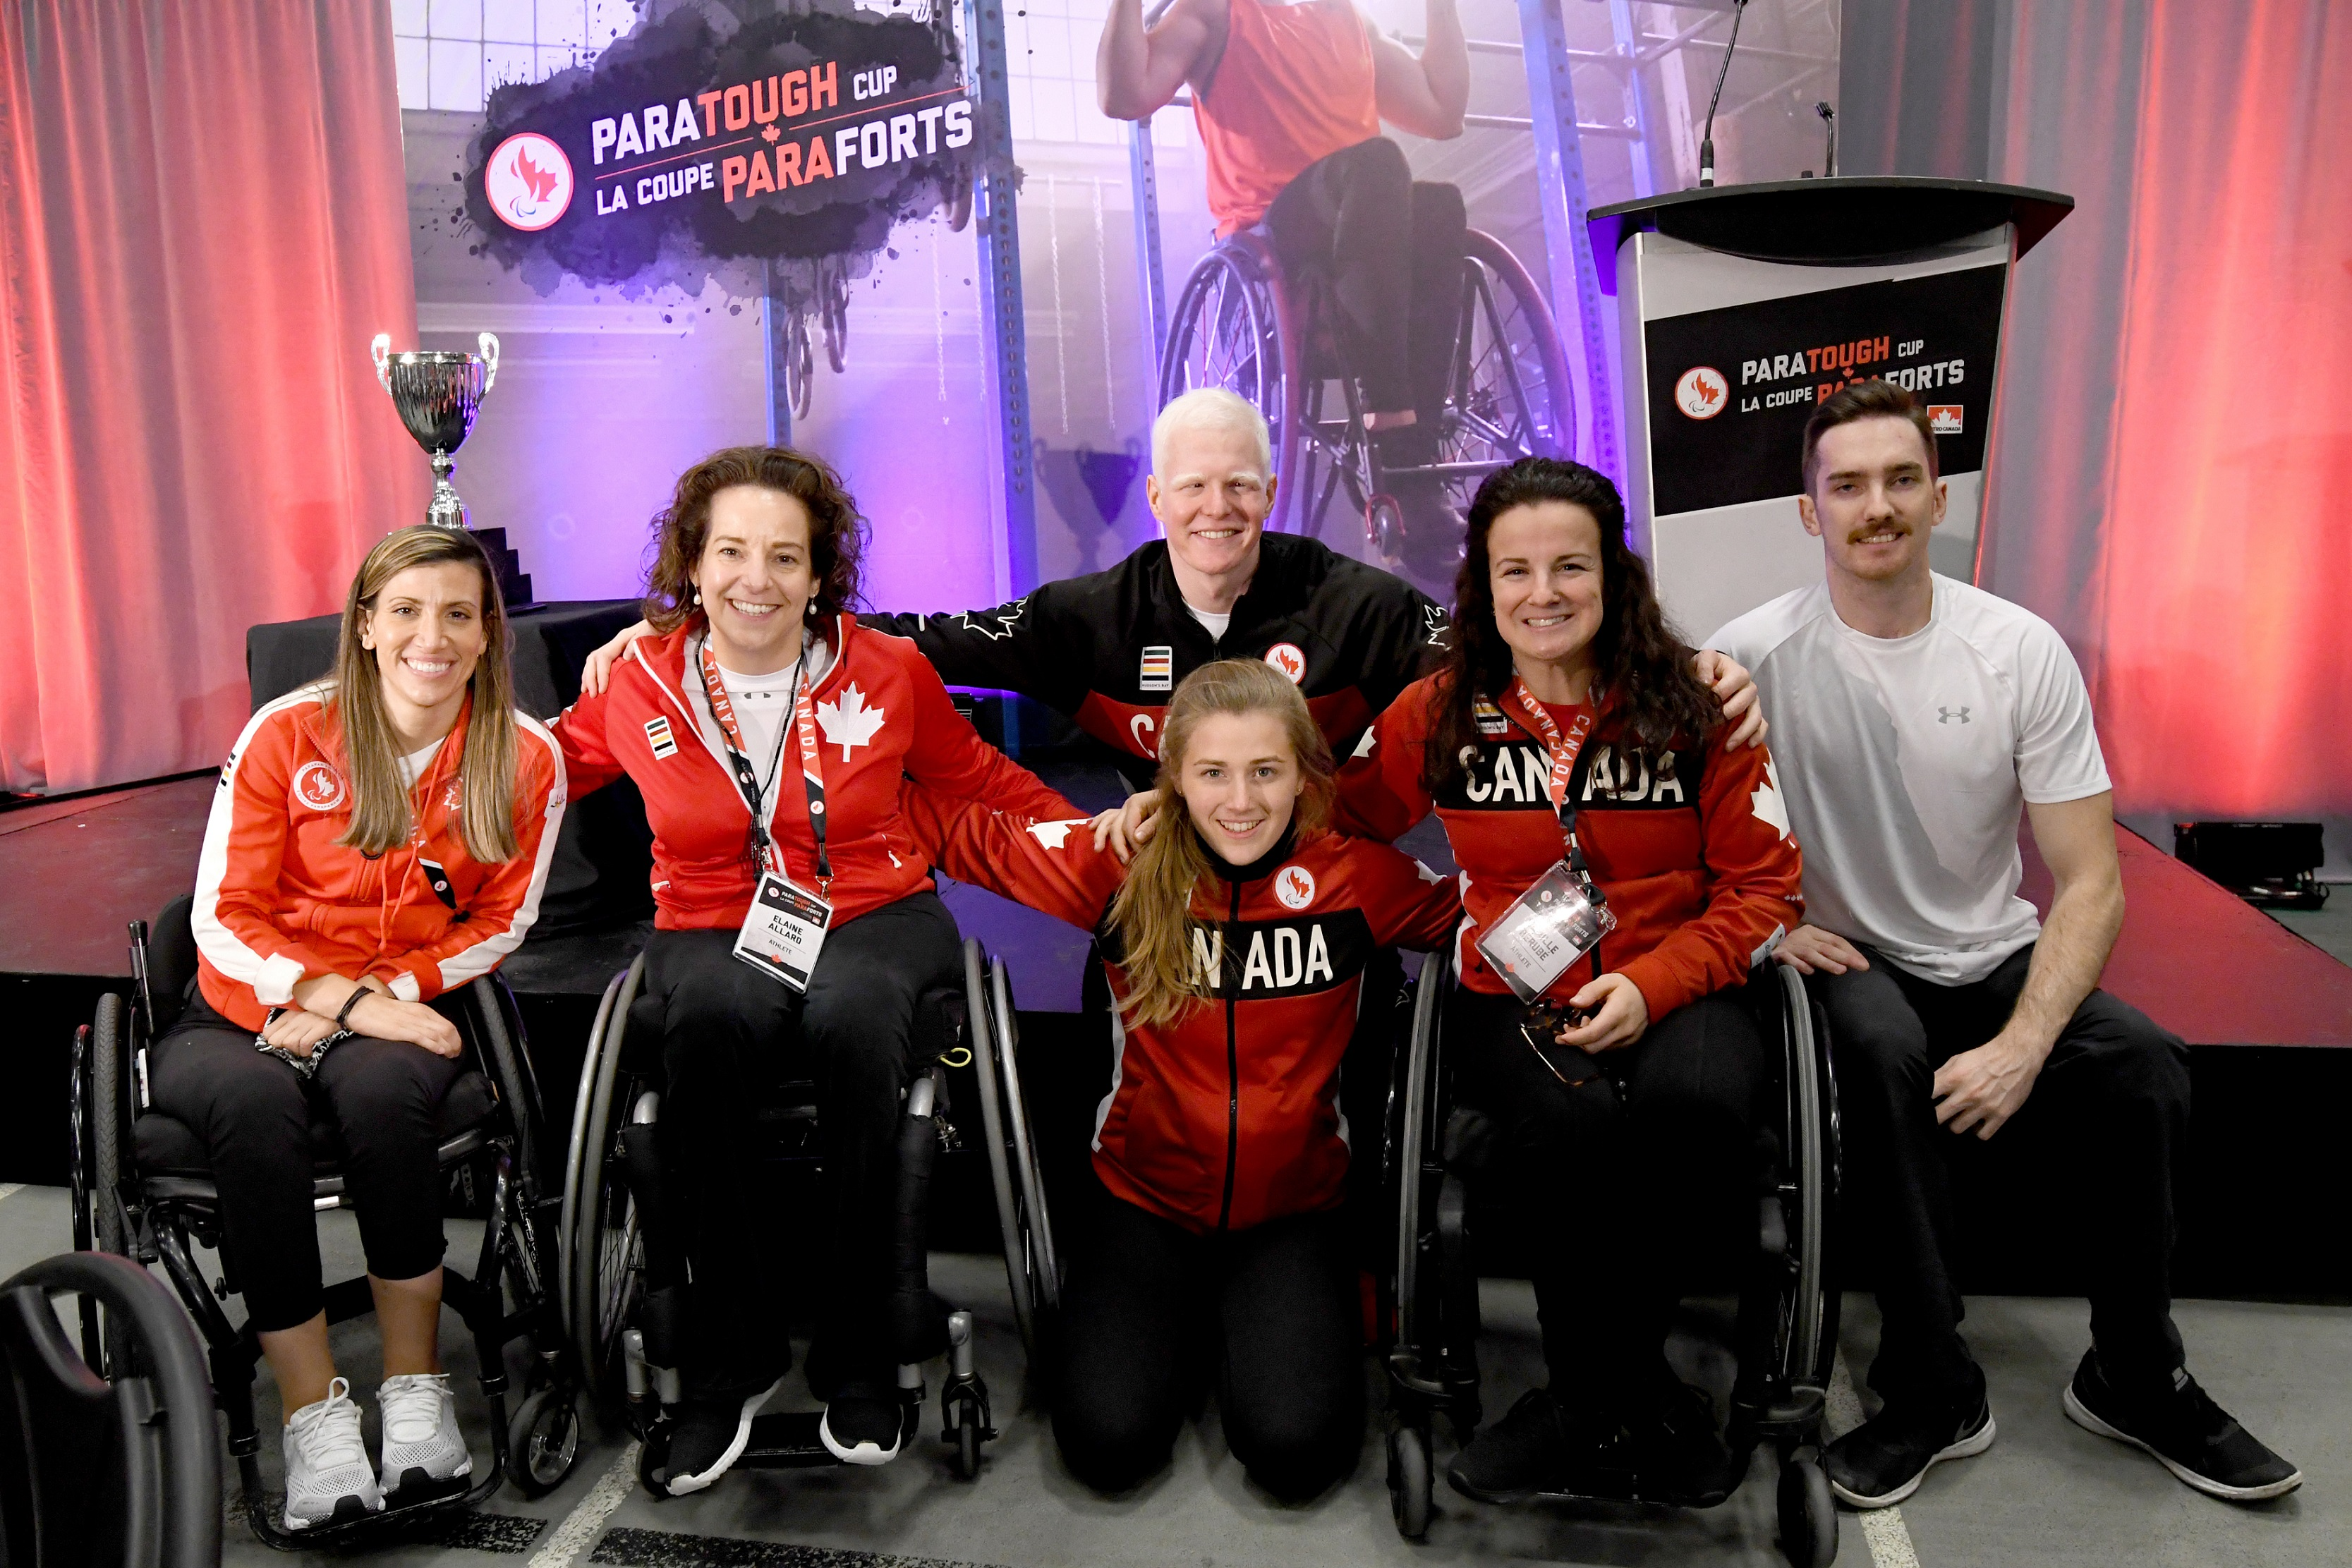 Melanie Labelle, Elaine Allard, Nicolas-Guy Turbide, Abi Tripp, Camille Berube, and Rob Armstrong at the 2019 Montreal ParaTough Cup.